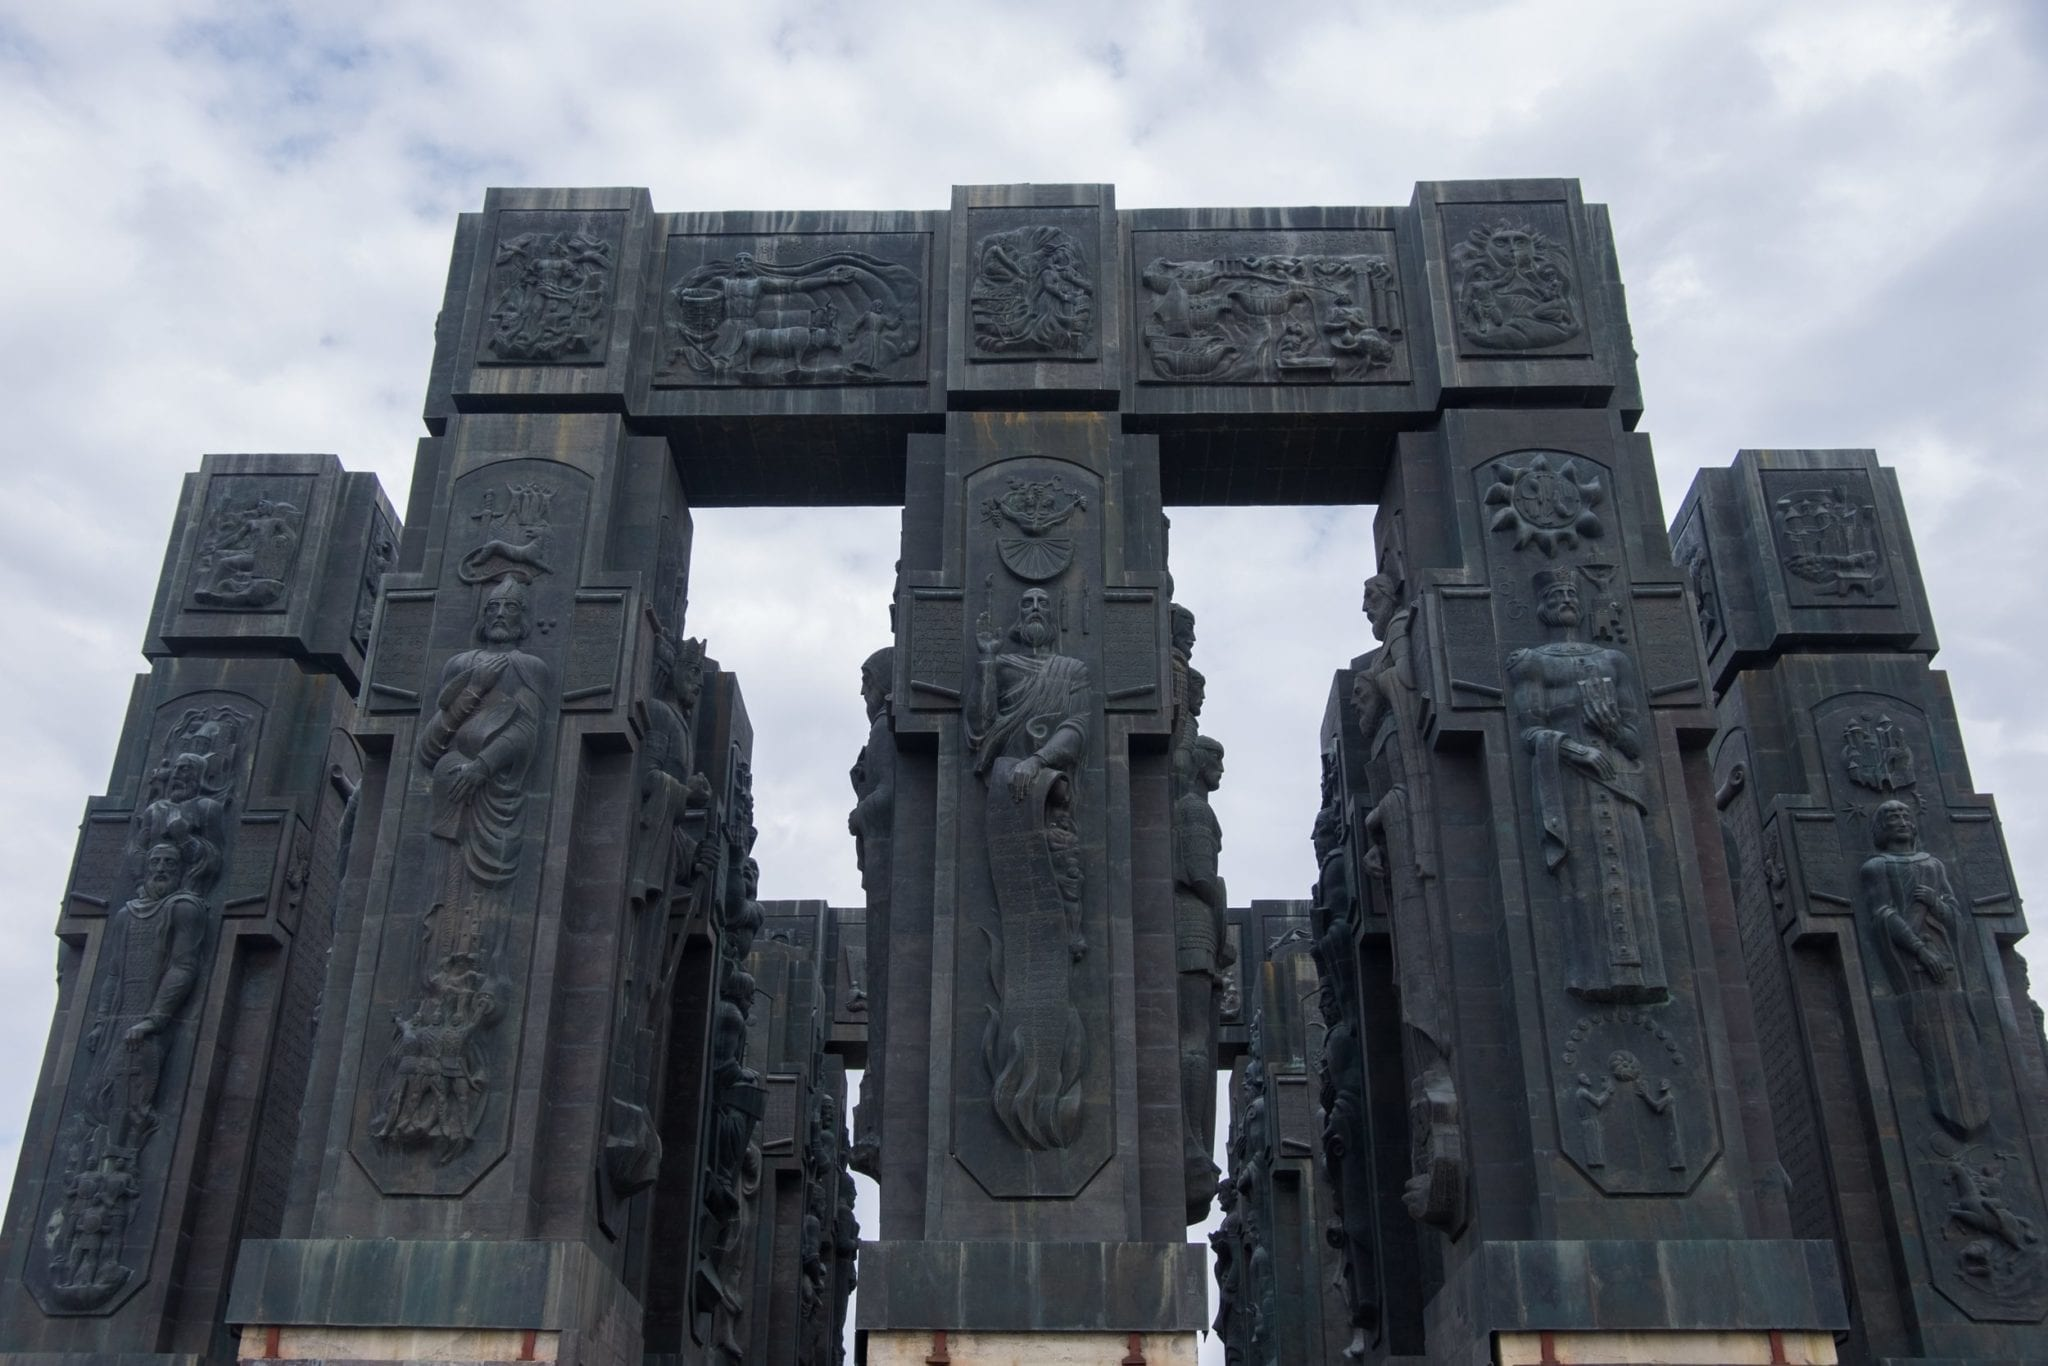 The Chronicles of Georgia: giant black pillars covered with carvings of people.